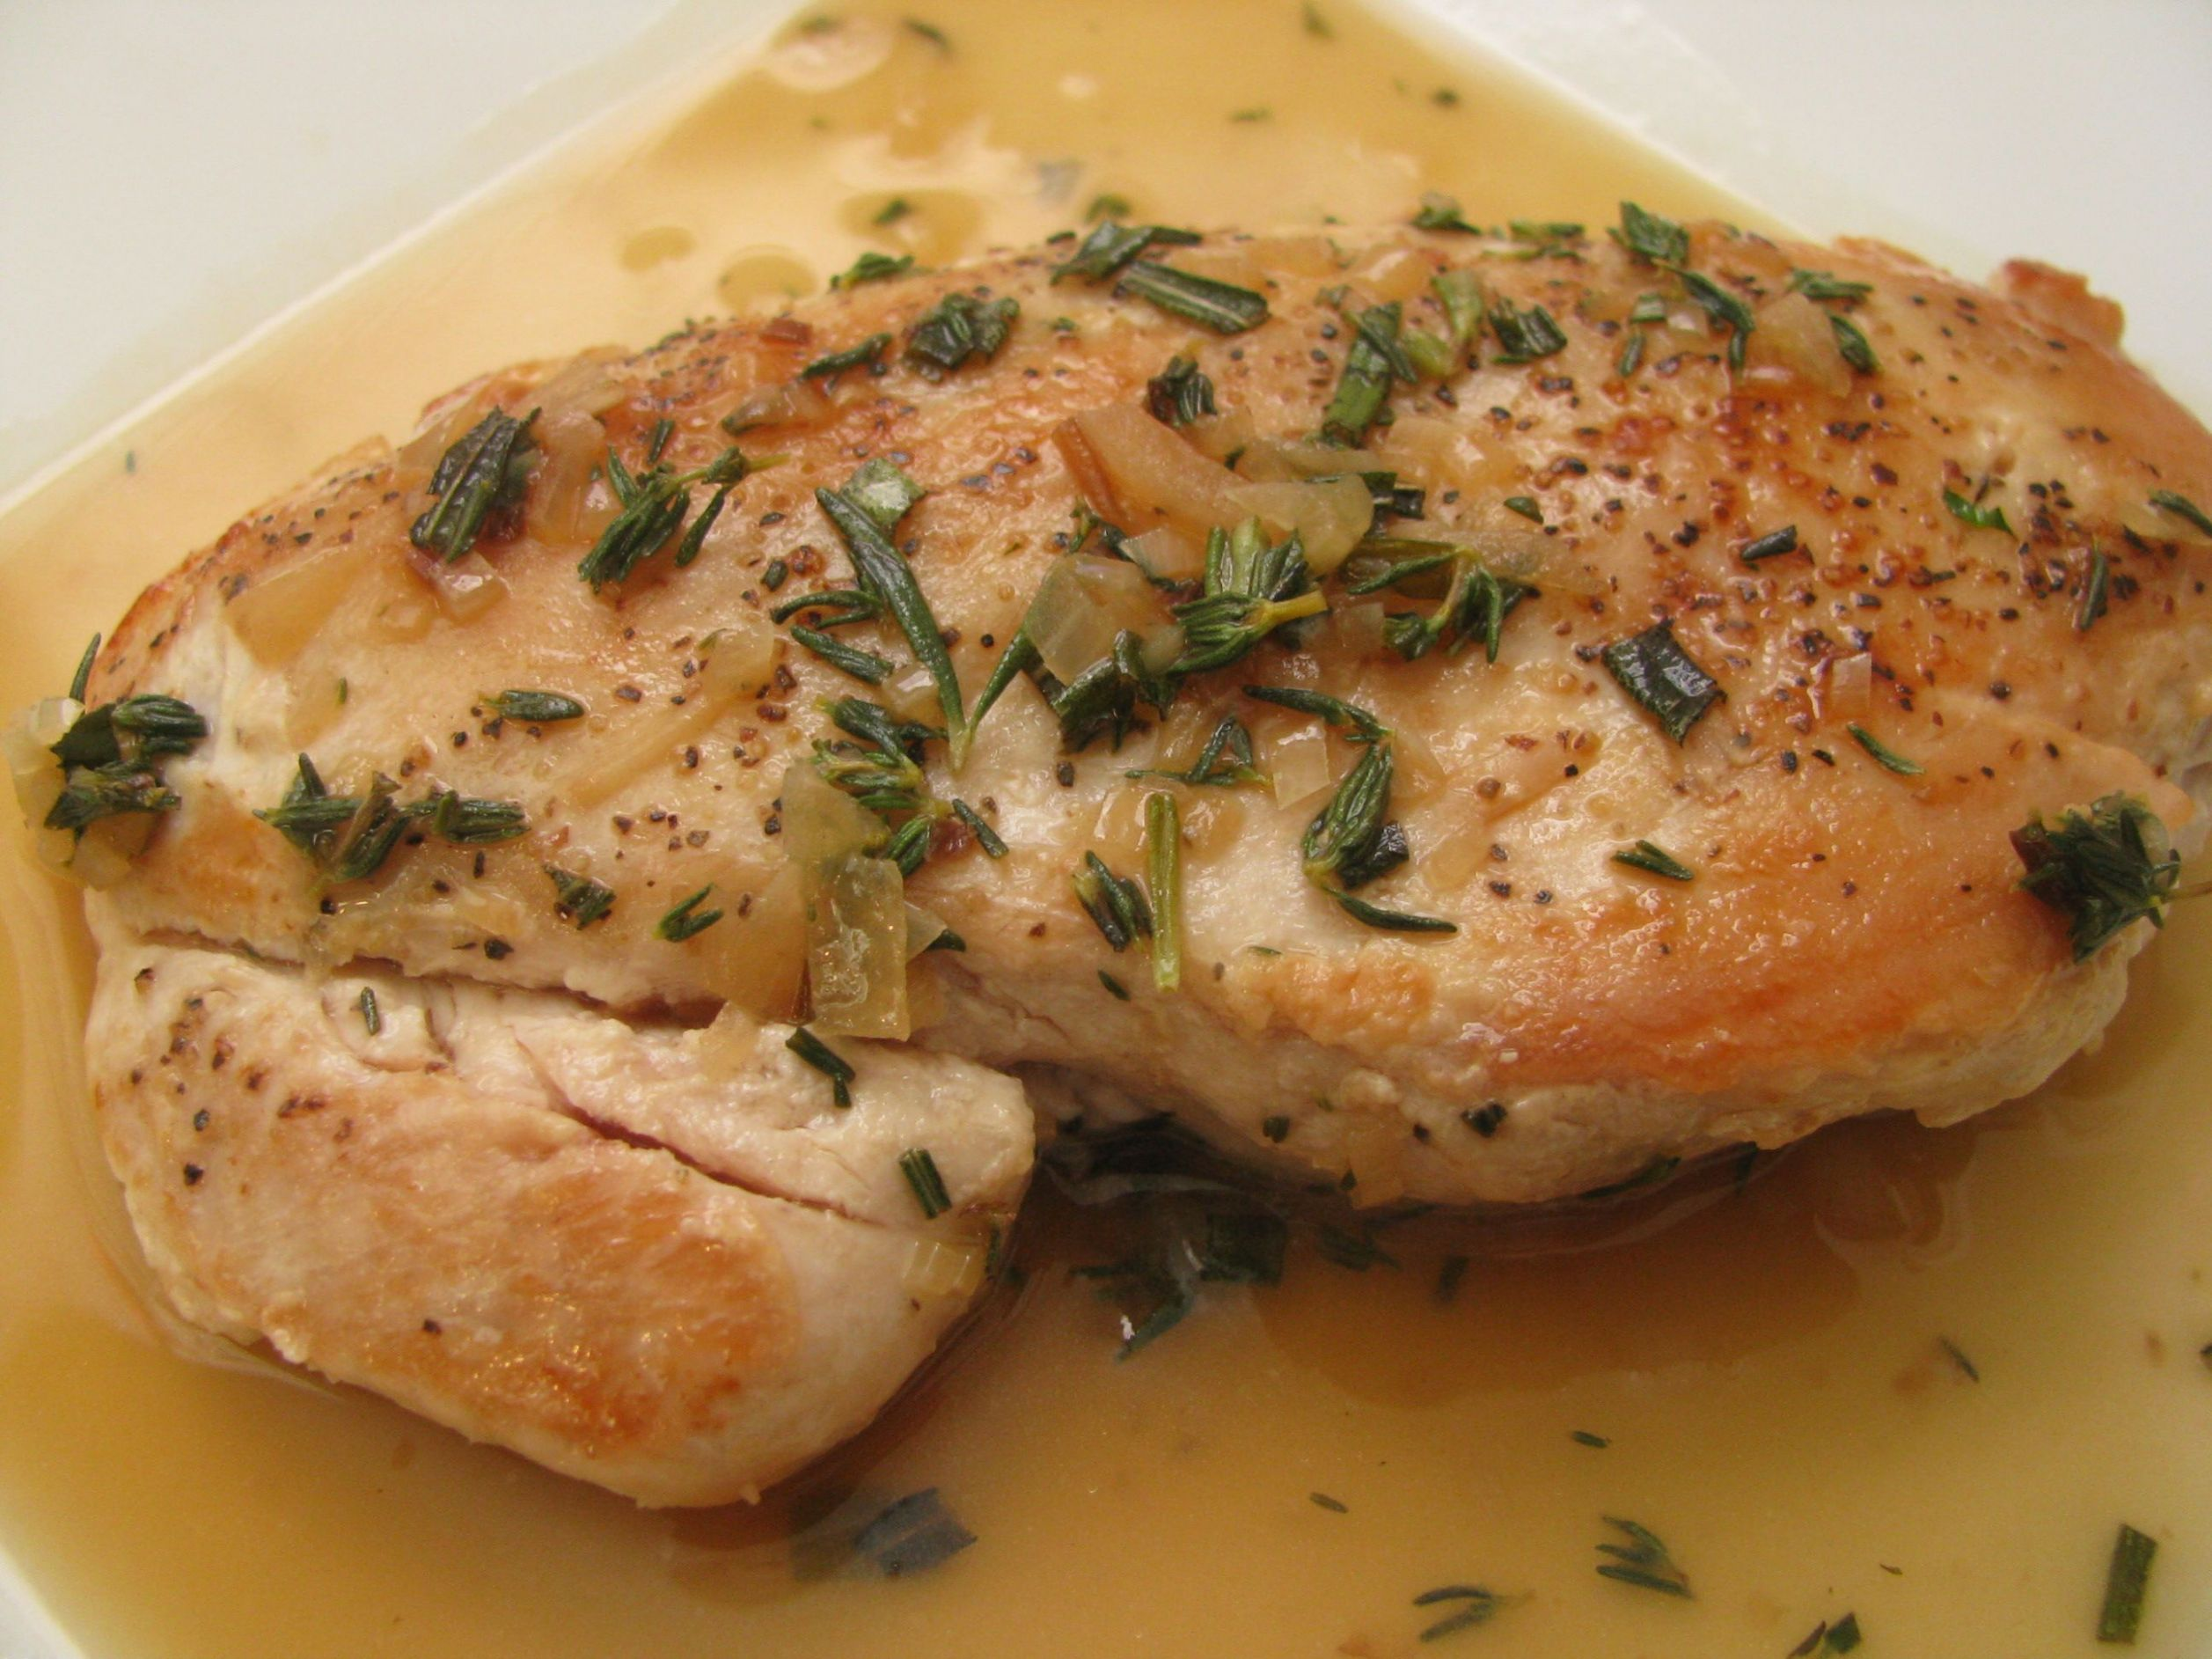 Pinterest - Recipes With Chicken Breast For Weight Loss